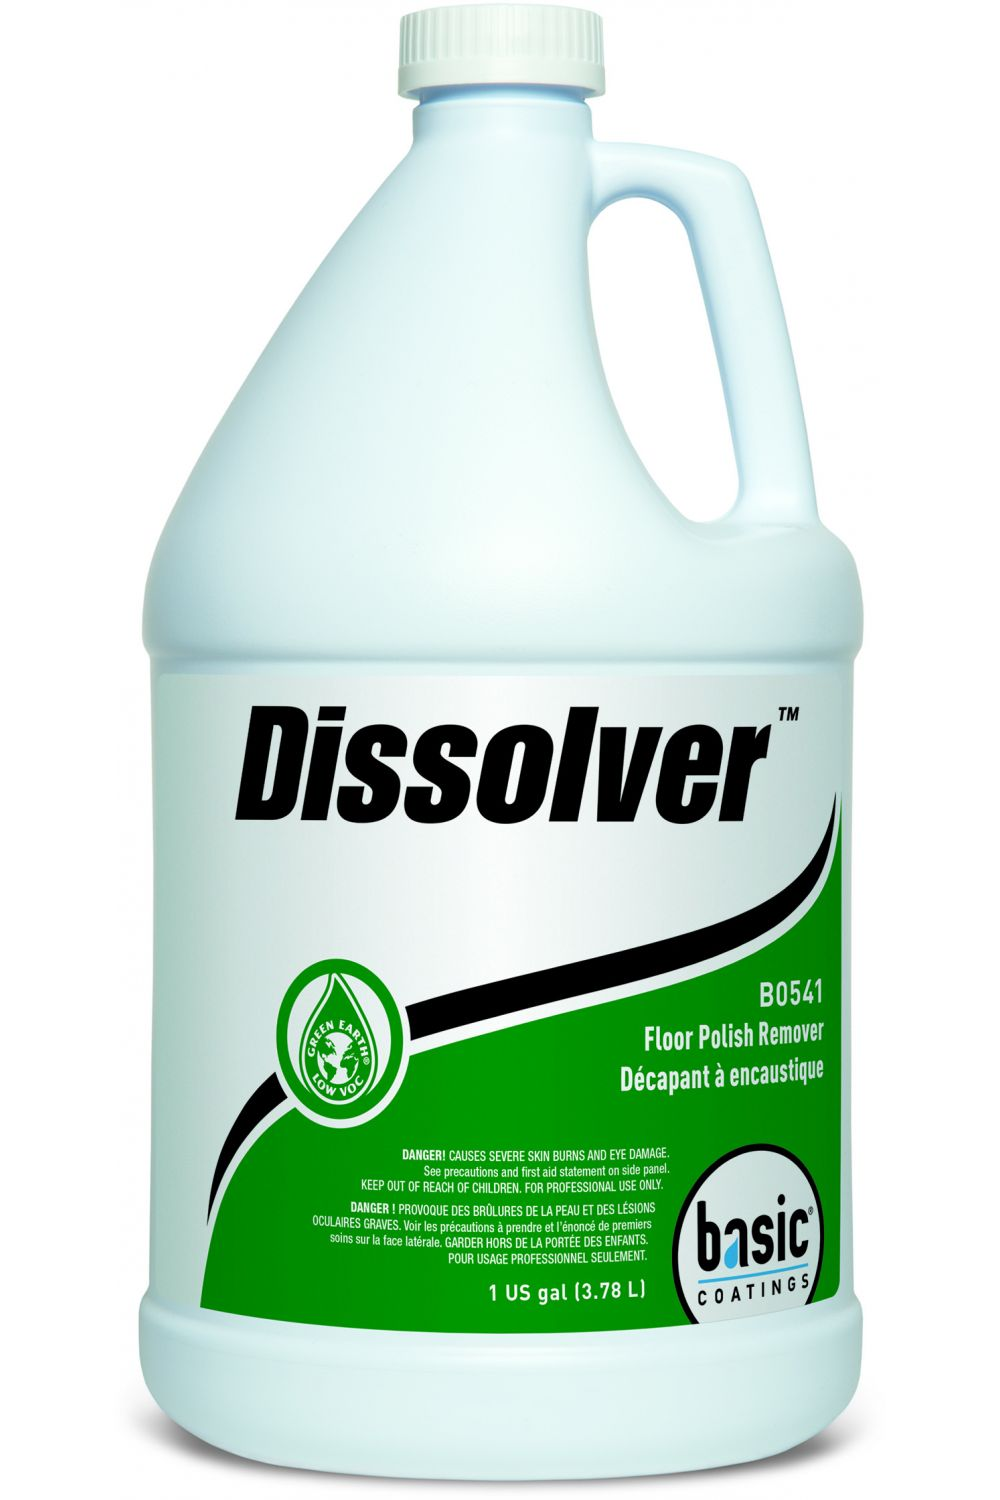 Basic Coatings Dissolver Floor Polish Remover